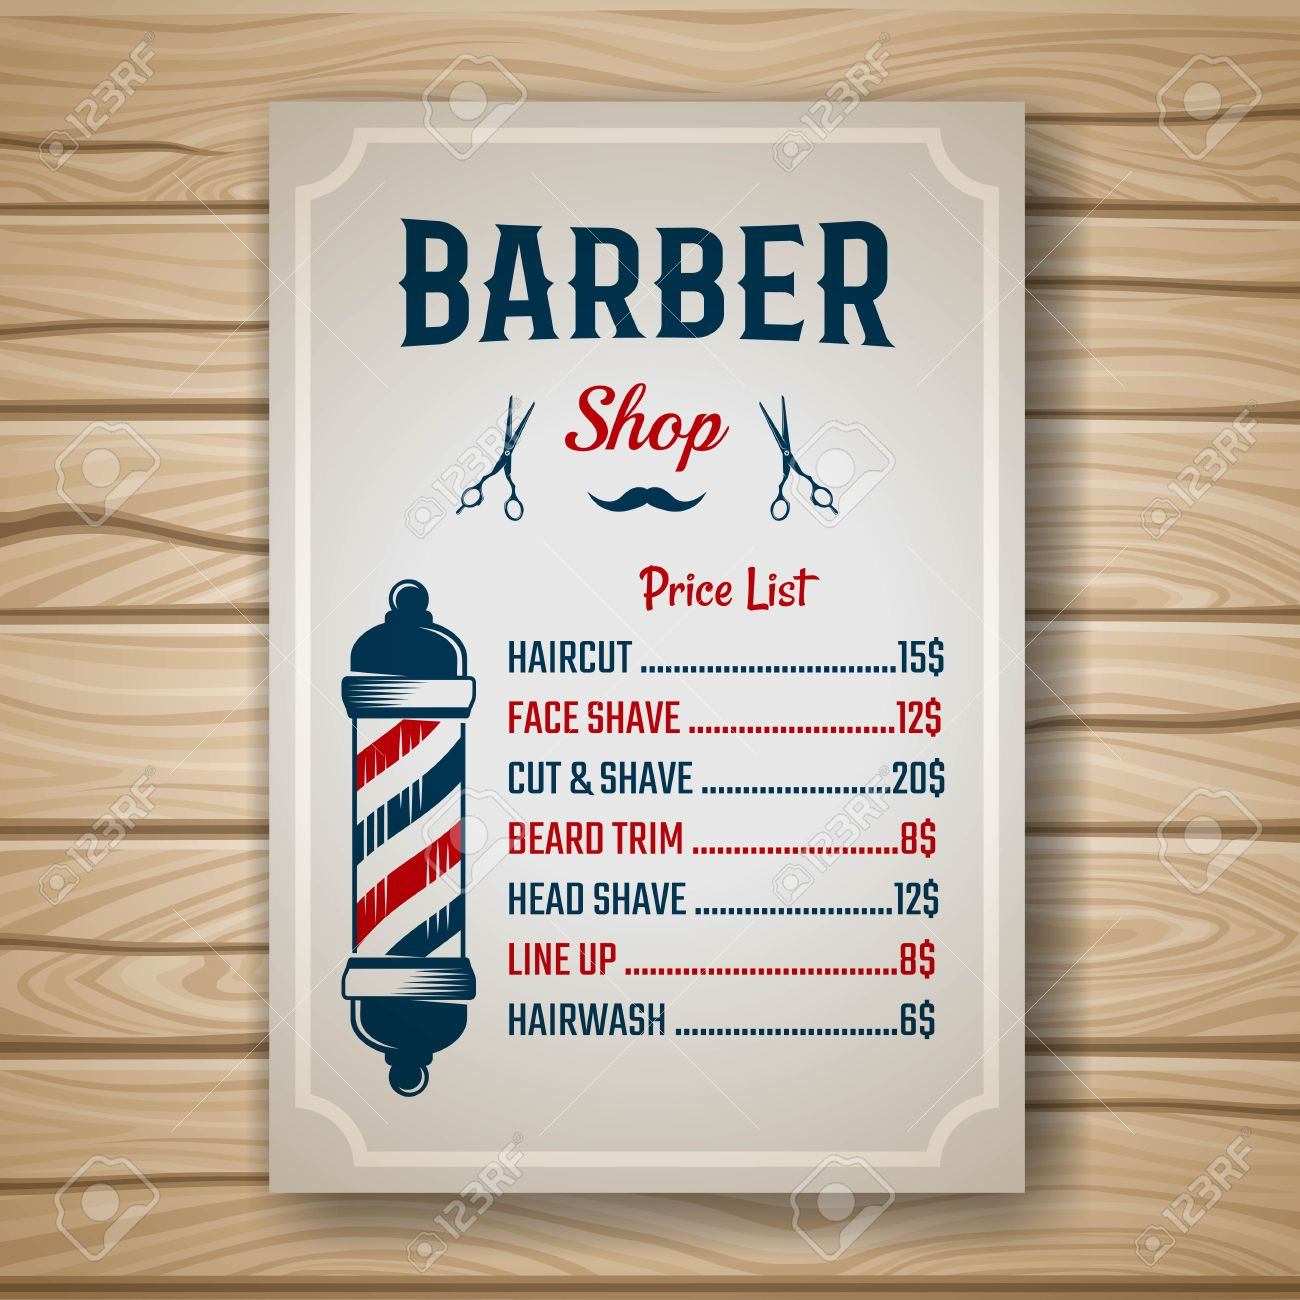 Barber shop colored price or brochure list with prices at the hairstyles and haircuts on table vector illustration - 58296627